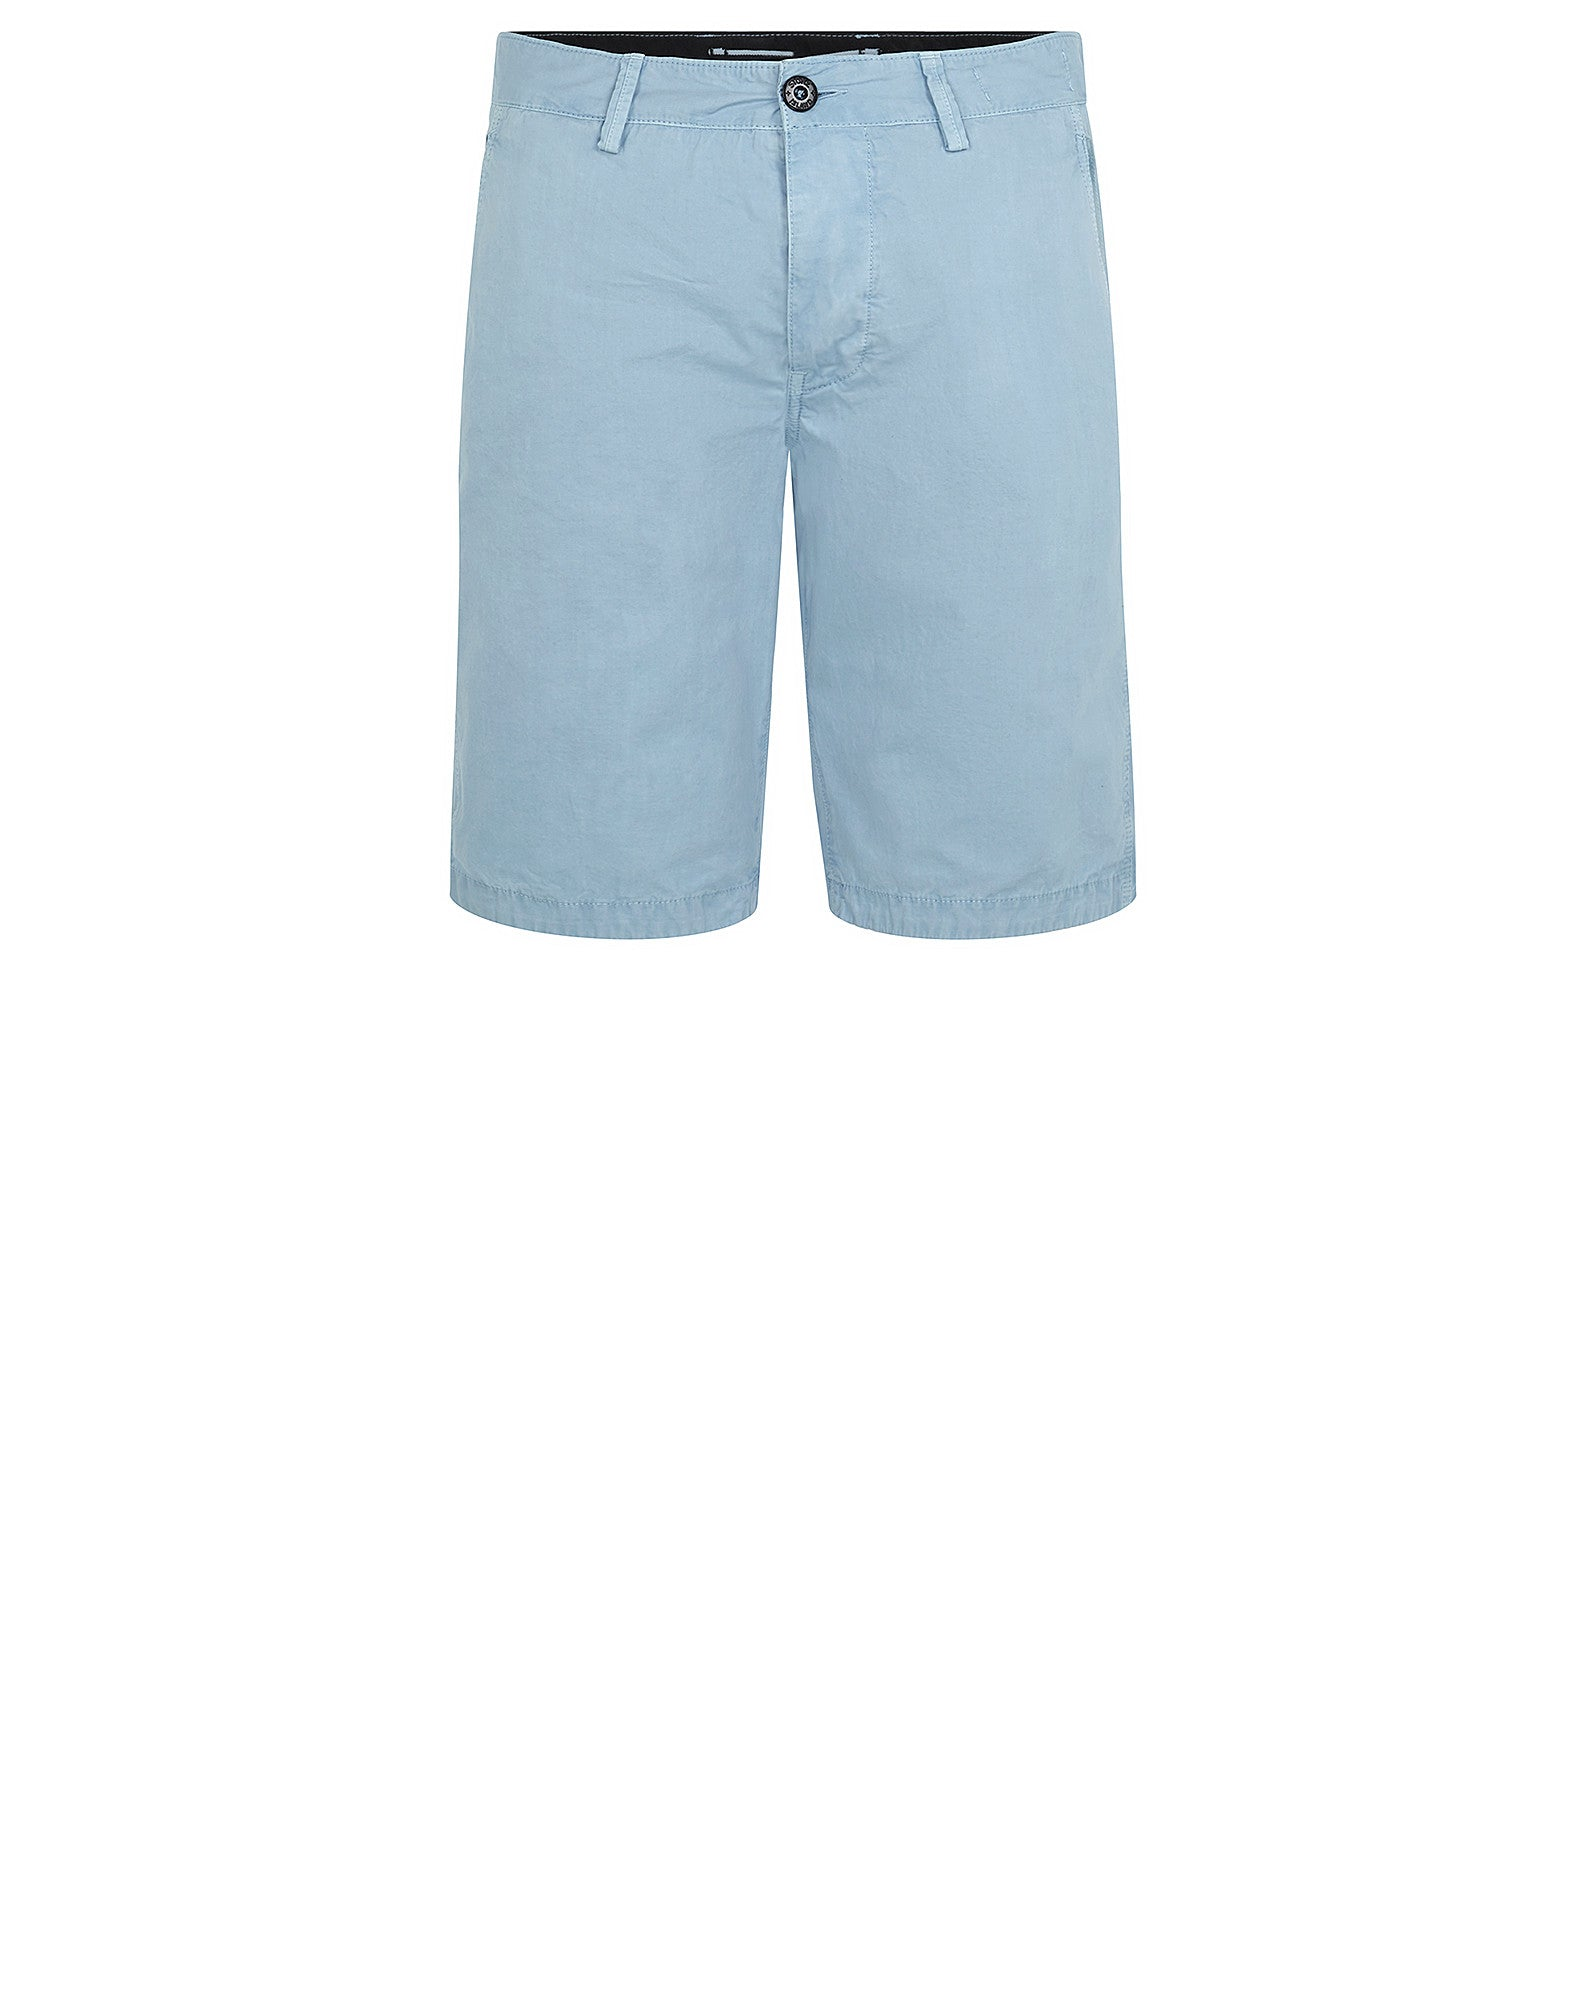 L15WN T.CO+OLD Bermuda Shorts in Blue